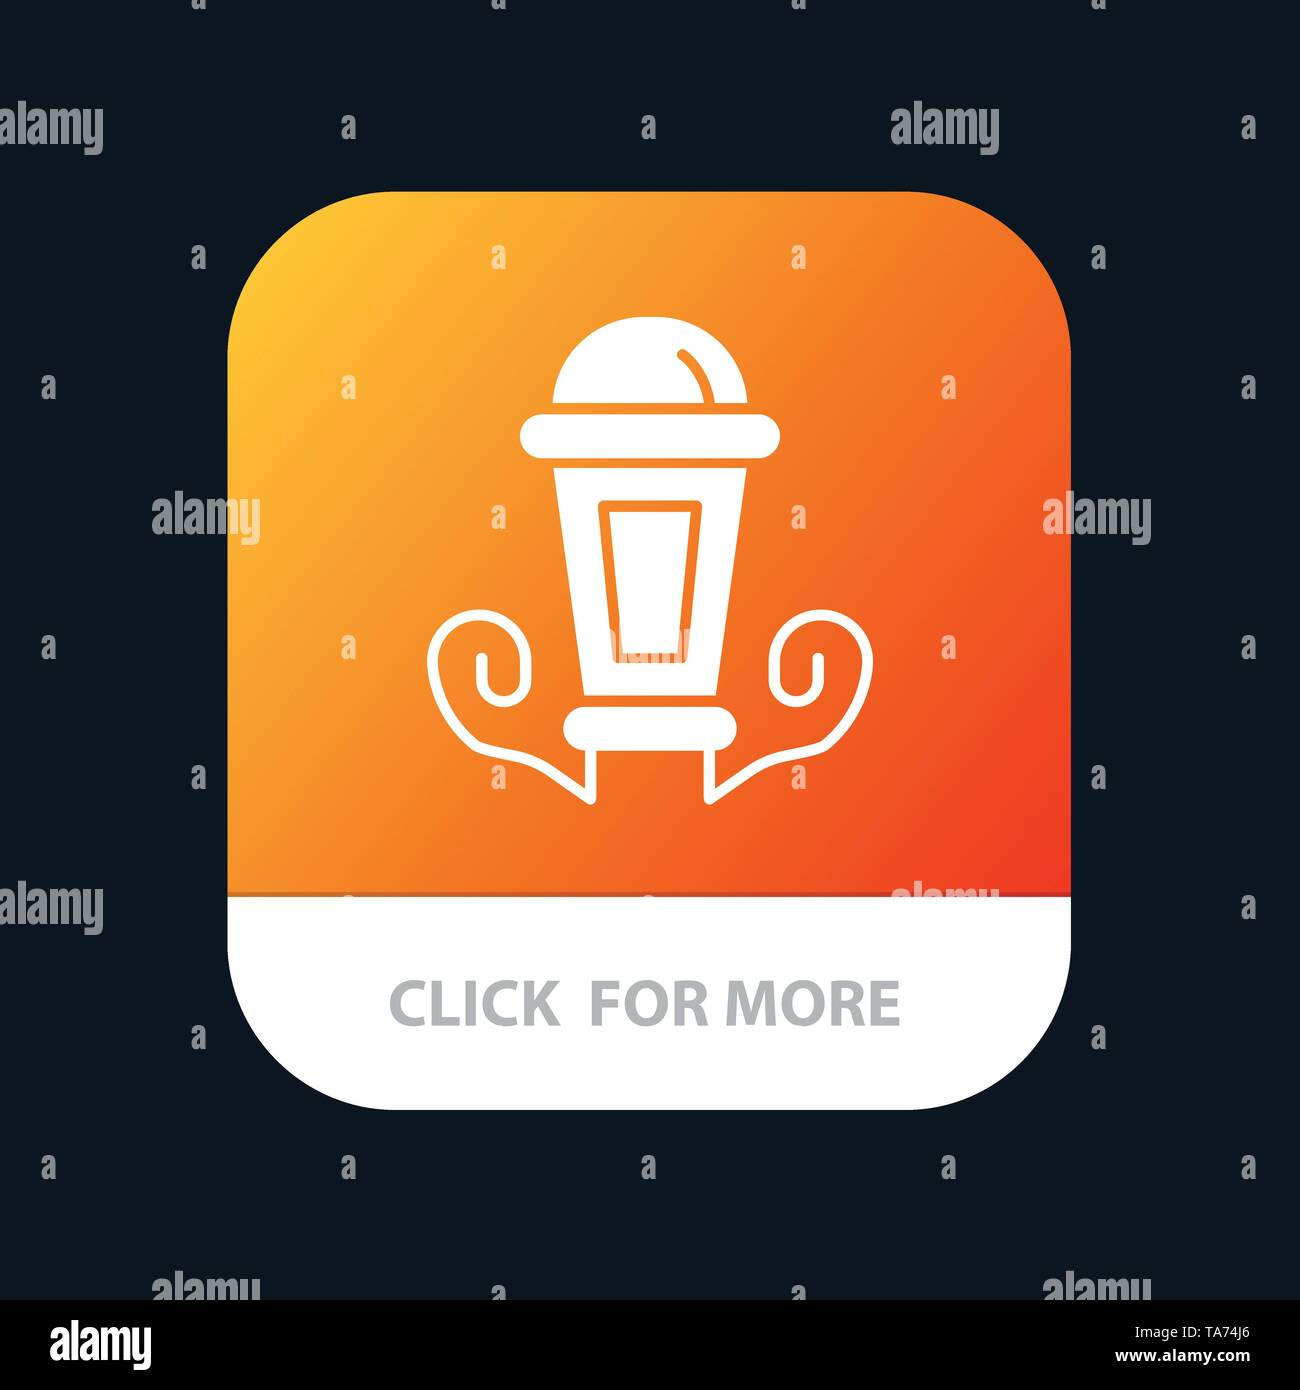 Light, Night, Lamp, Lantern Mobile App Button. Android and IOS Glyph Version - Stock Image